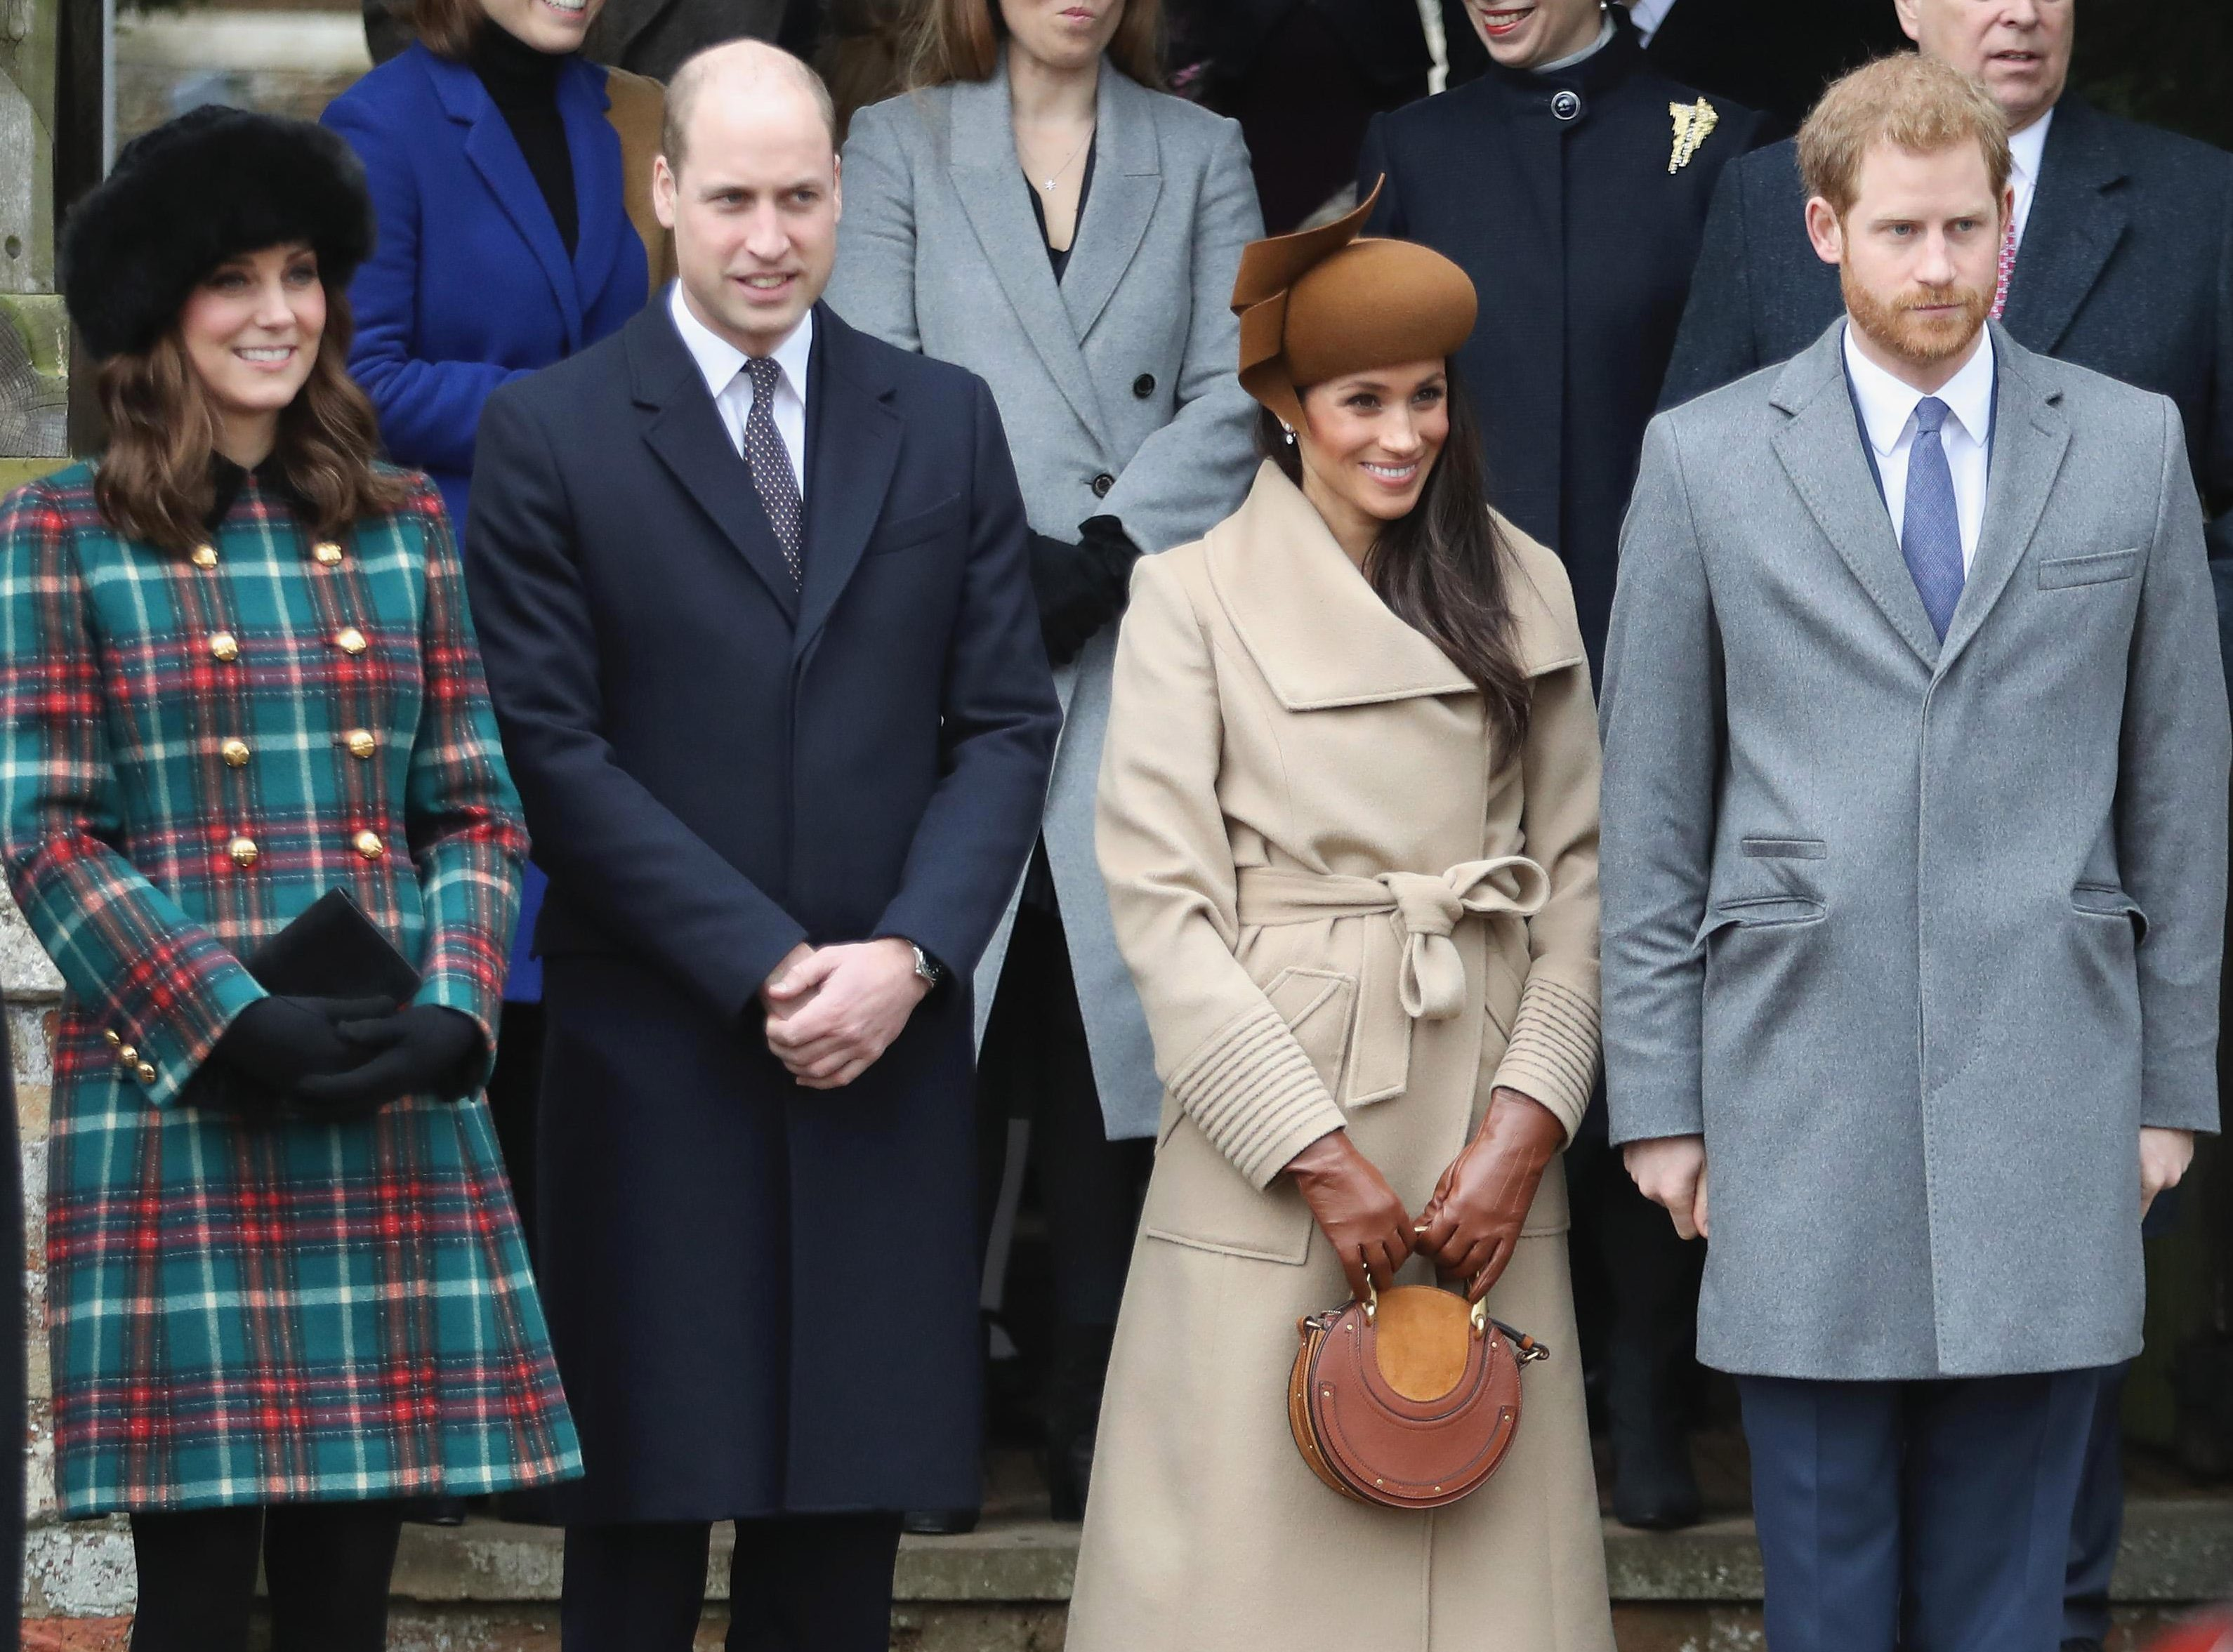 Kate Middleton and Prince William to spend Christmas ALONE after being snubbed by Meghan Markle and Prince Harry amid 'rift between royals'